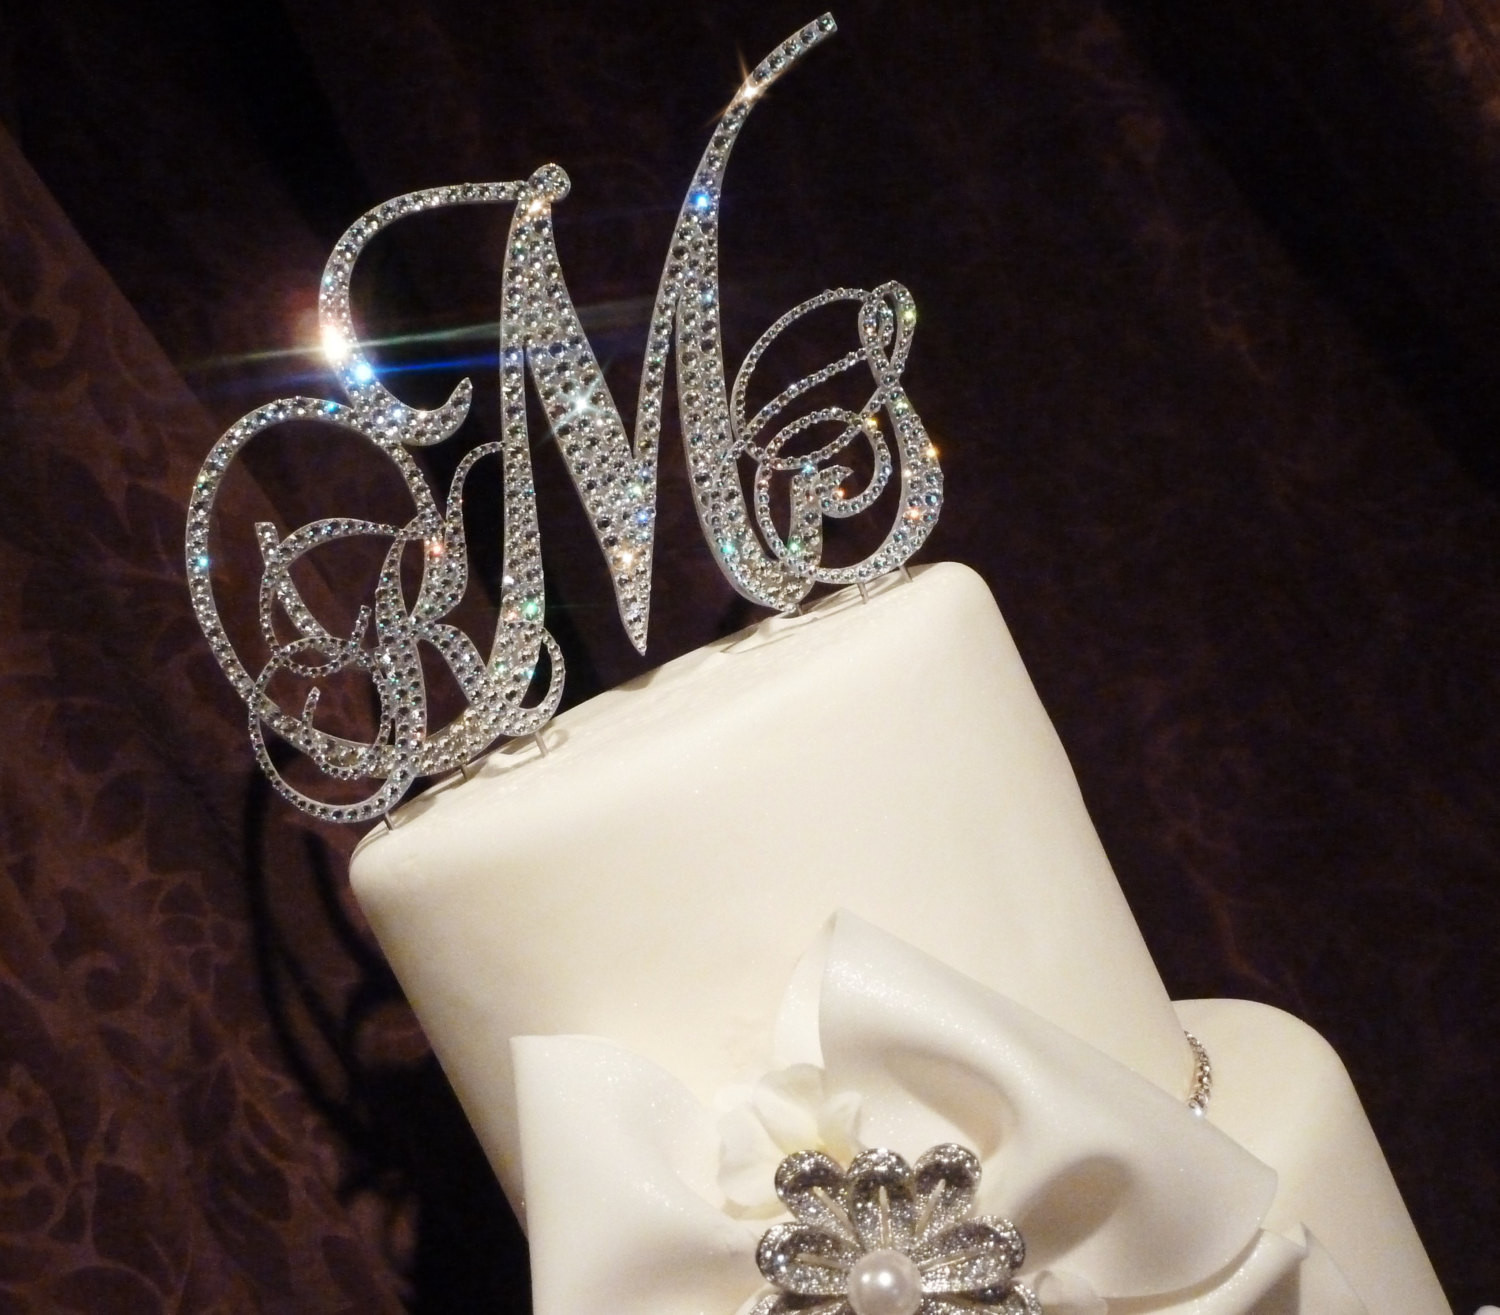 Initials Cake Toppers For Wedding Cakes  Monogram Wedding Cake Toppers Ideas MARGUSRIGA Baby Party